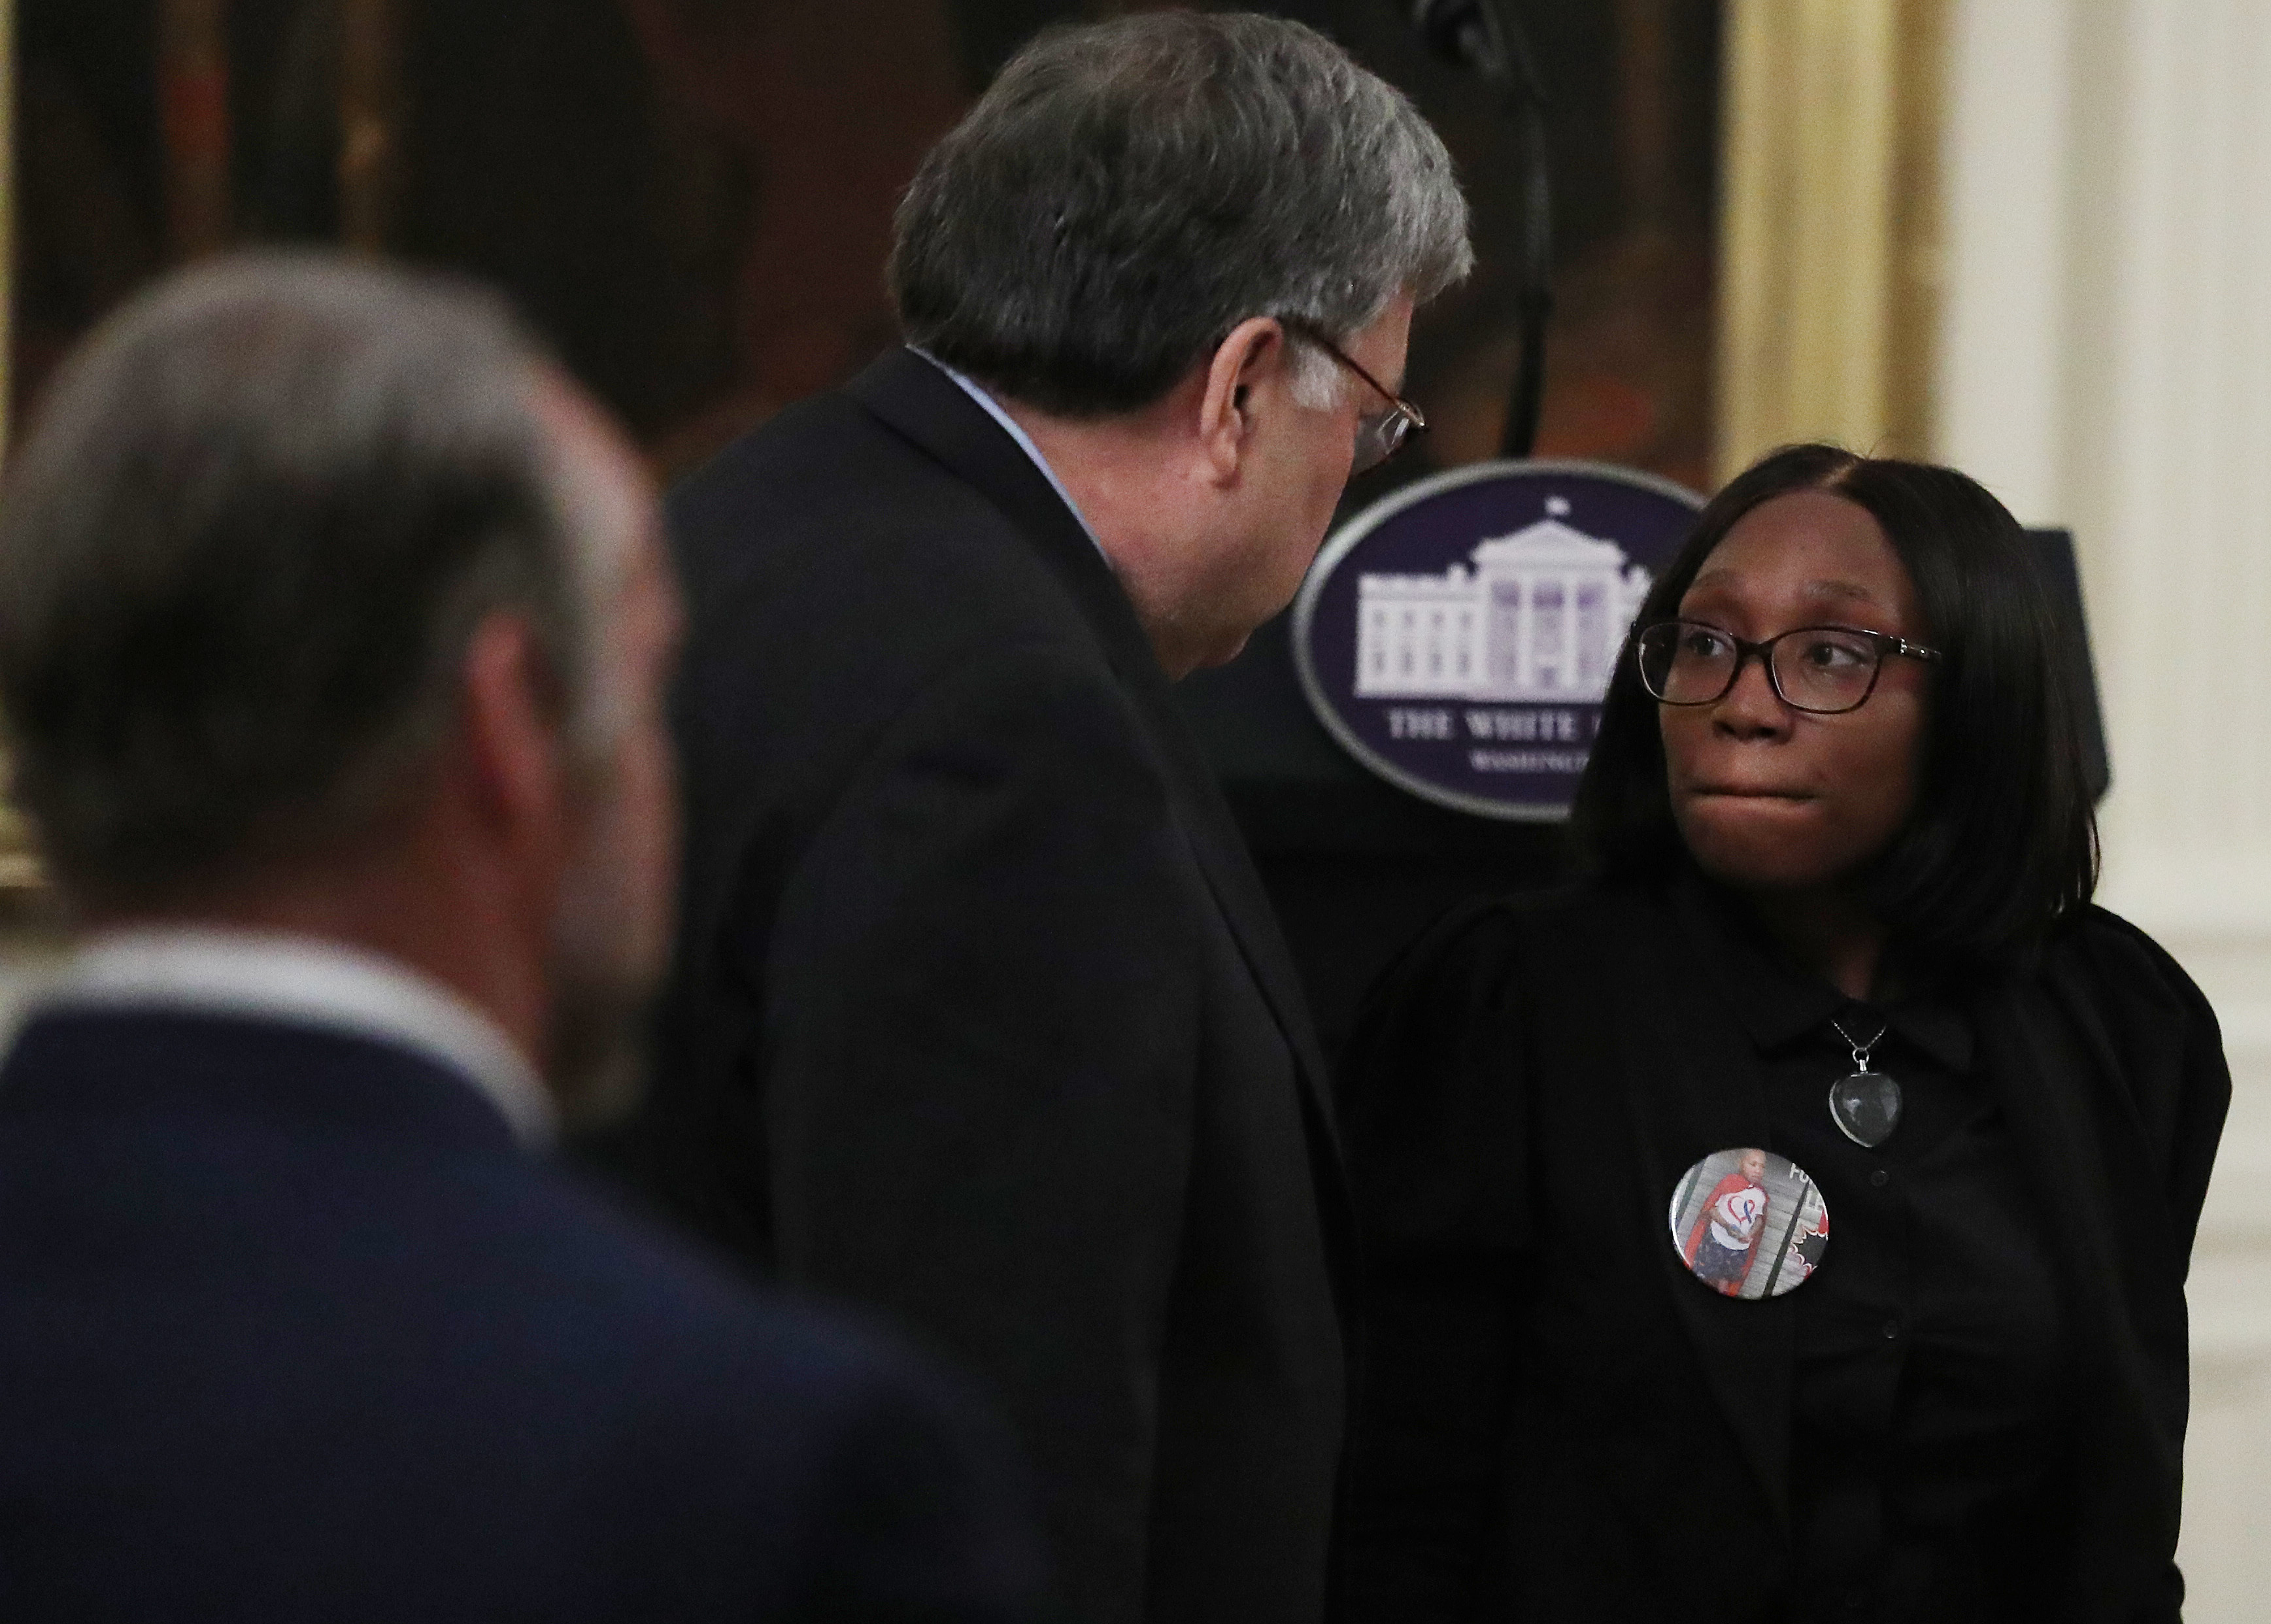 U.S. Attorney General William Barr speaks with Charron Powell following an event about 'Operation Legend' at the White House July 22, 2020 (Photo by Chip Somodevilla/Getty Images)